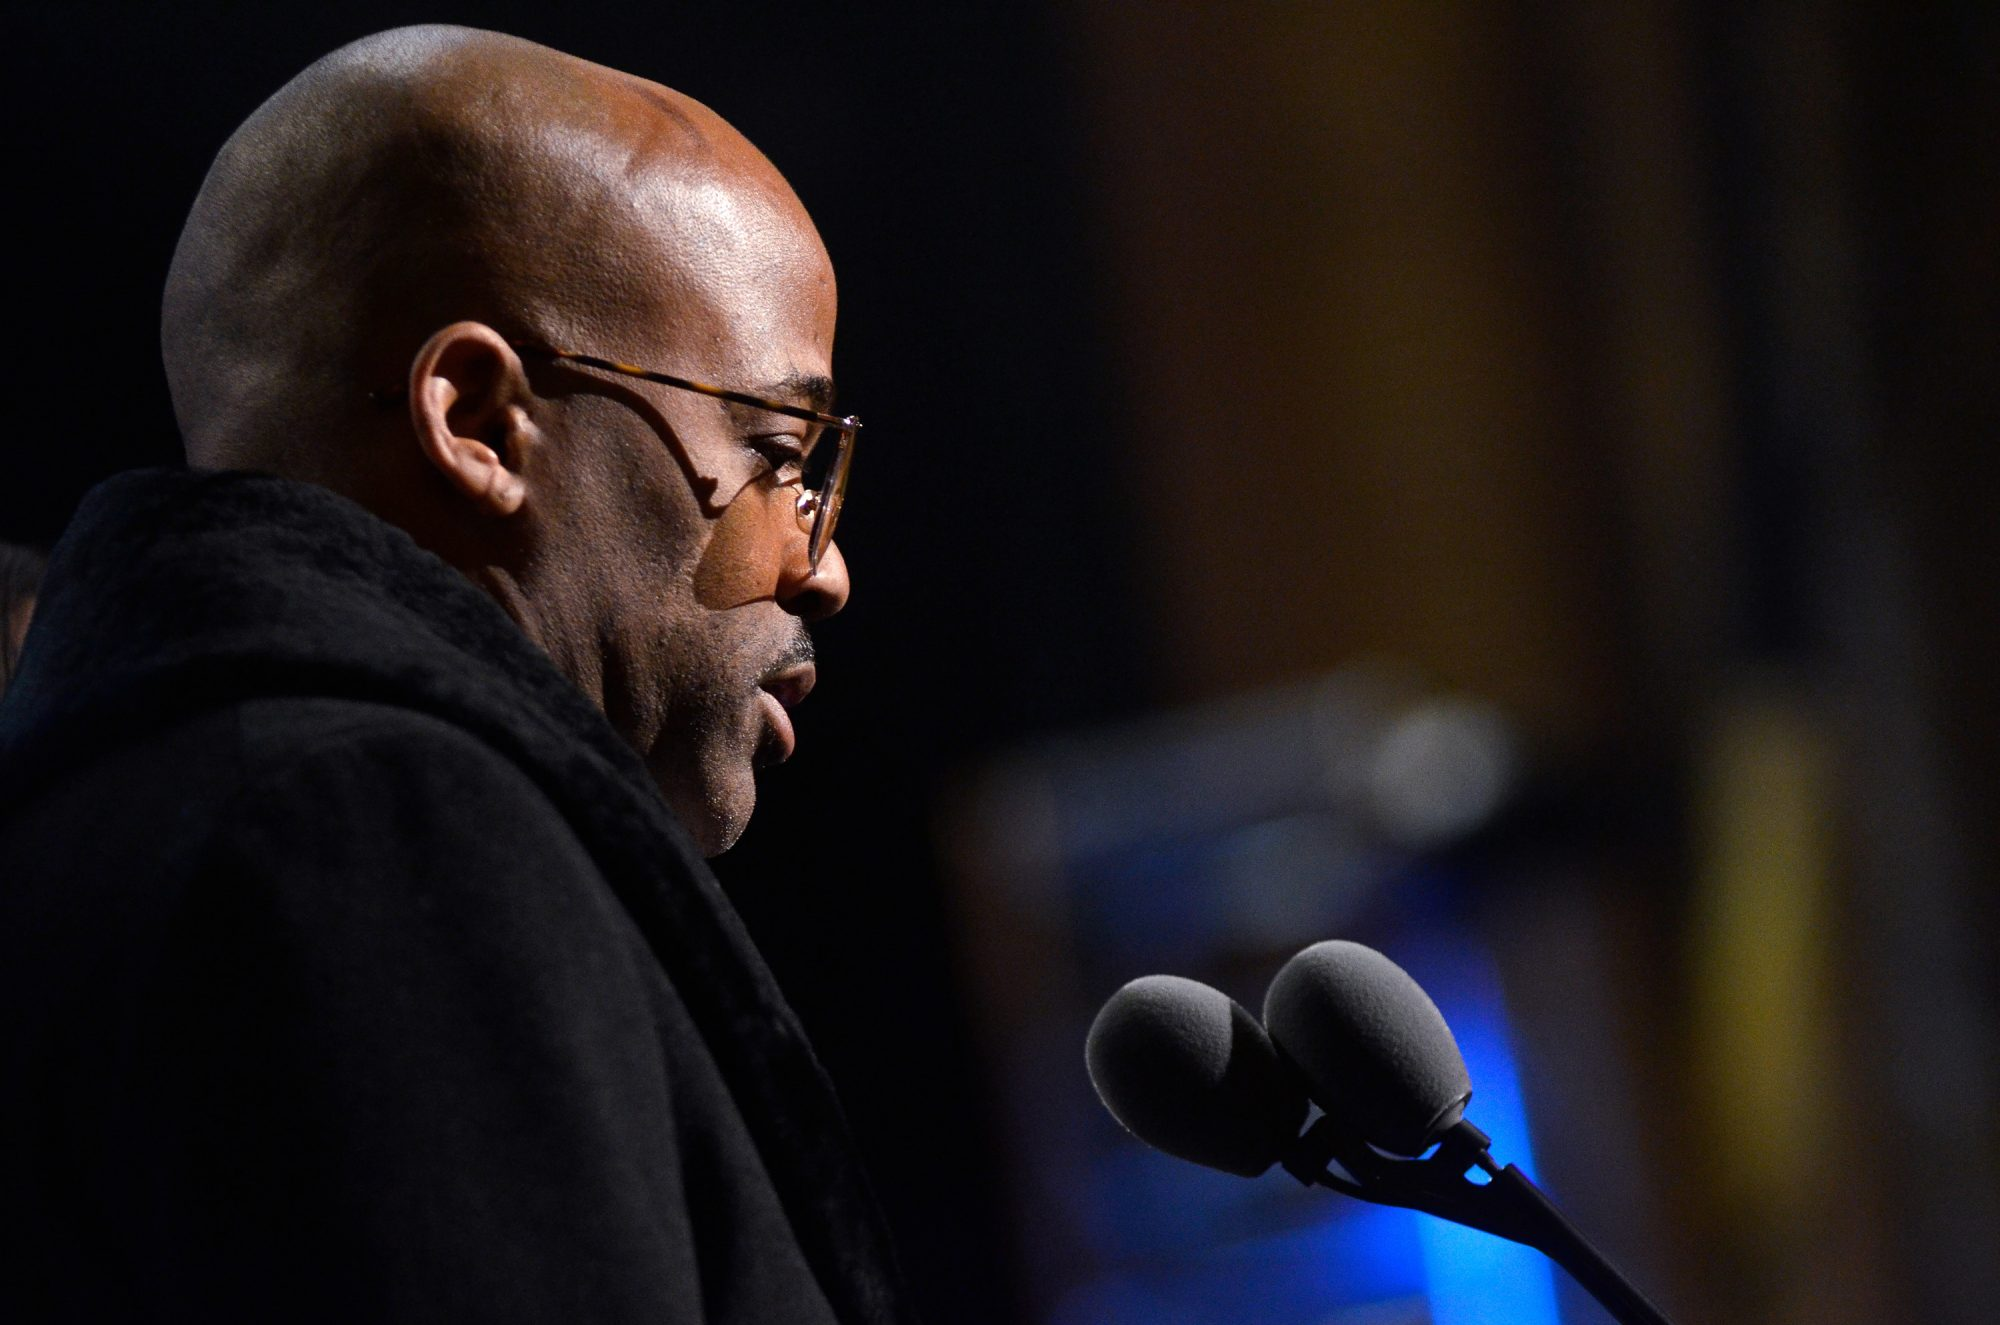 Damon Dash On What It's Like Living Three Decades With Diabetes